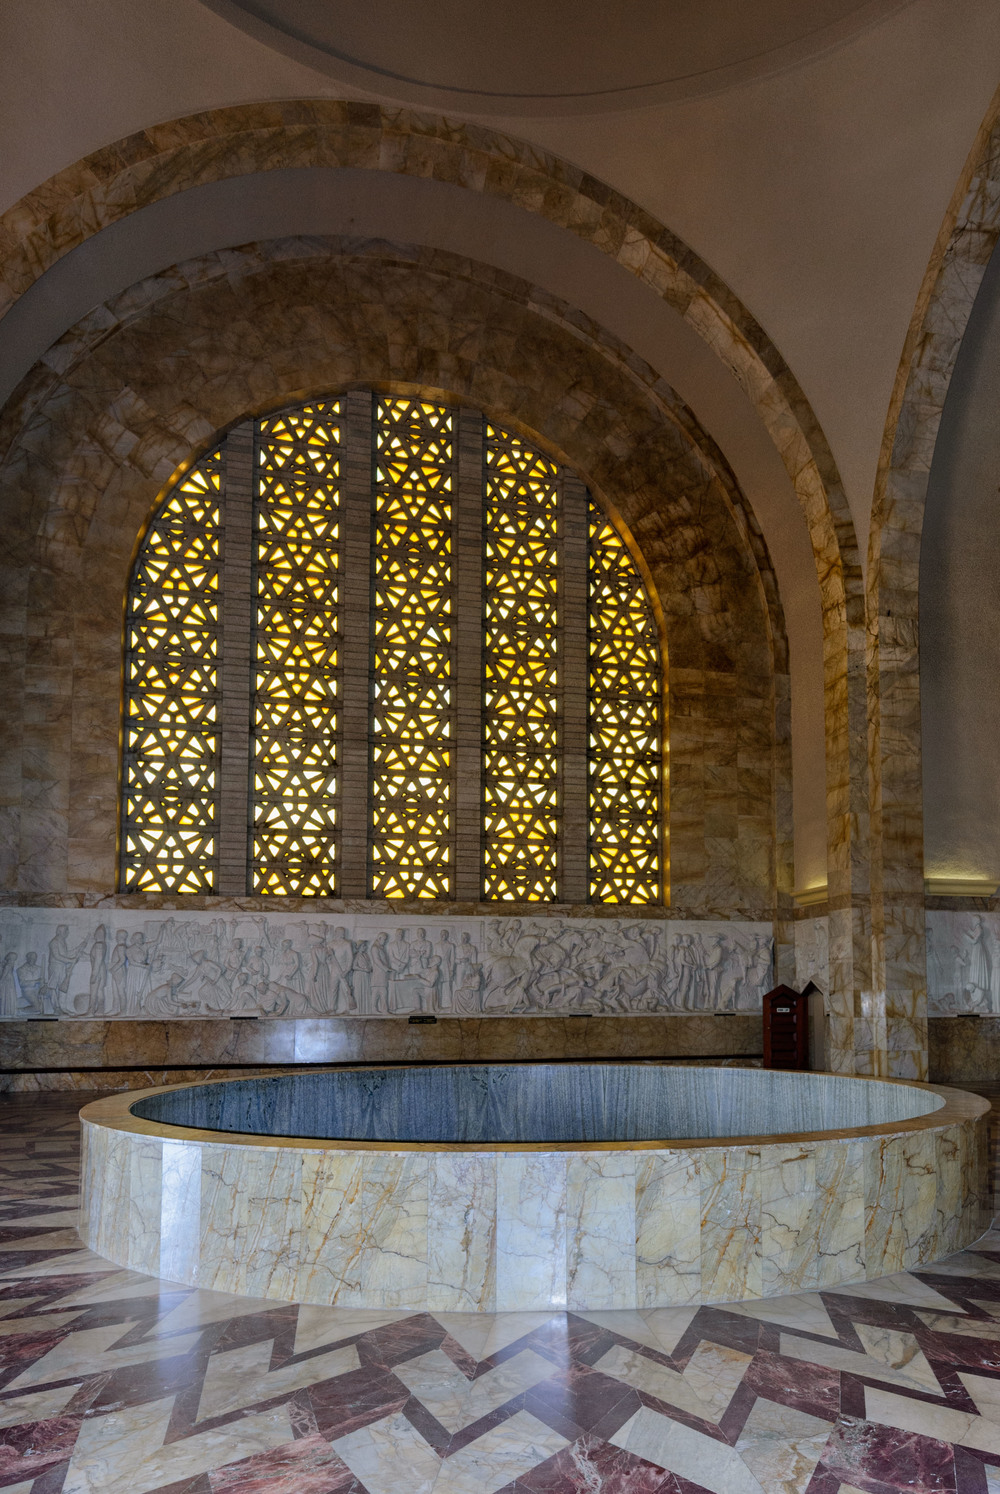 This massive space, flanked by four huge arched windows made from yellow Belgian glass, contains the unique marble Historical Frieze which is an intrinsic part of the design of the monument.